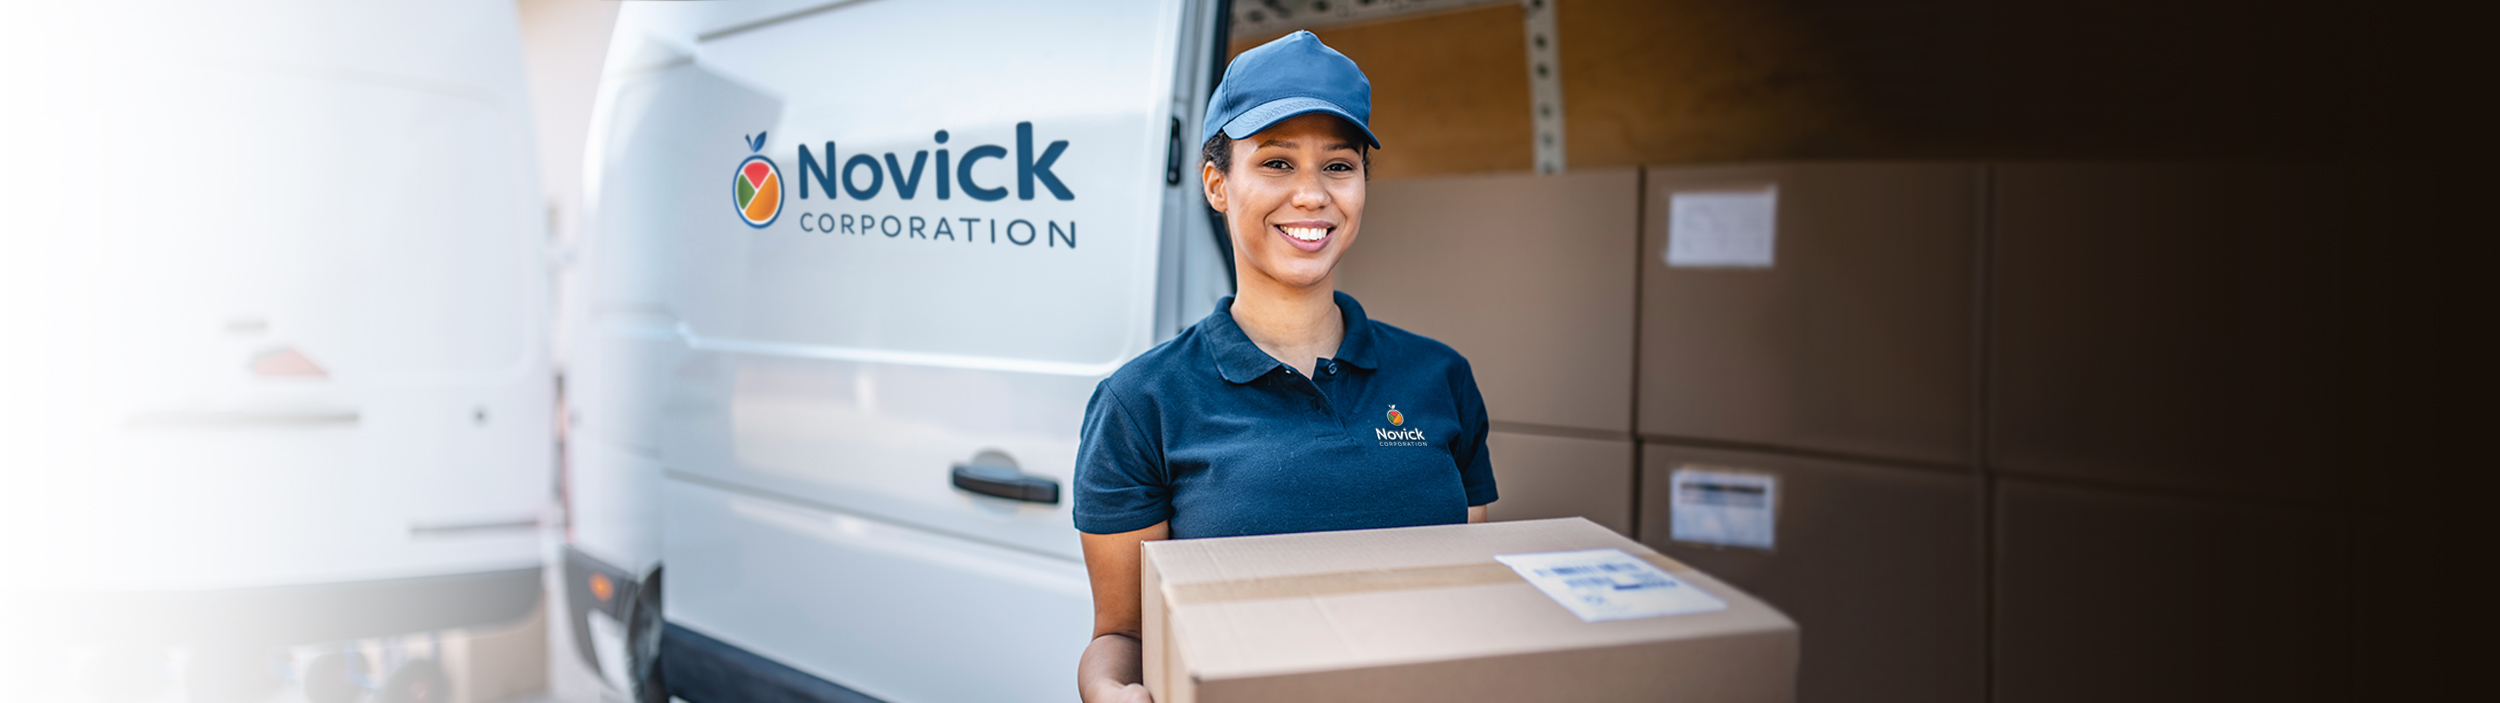 food distributors - Person standing in front of a Novick delivery truck holding a box - Novick Corporation - Pennsylvania